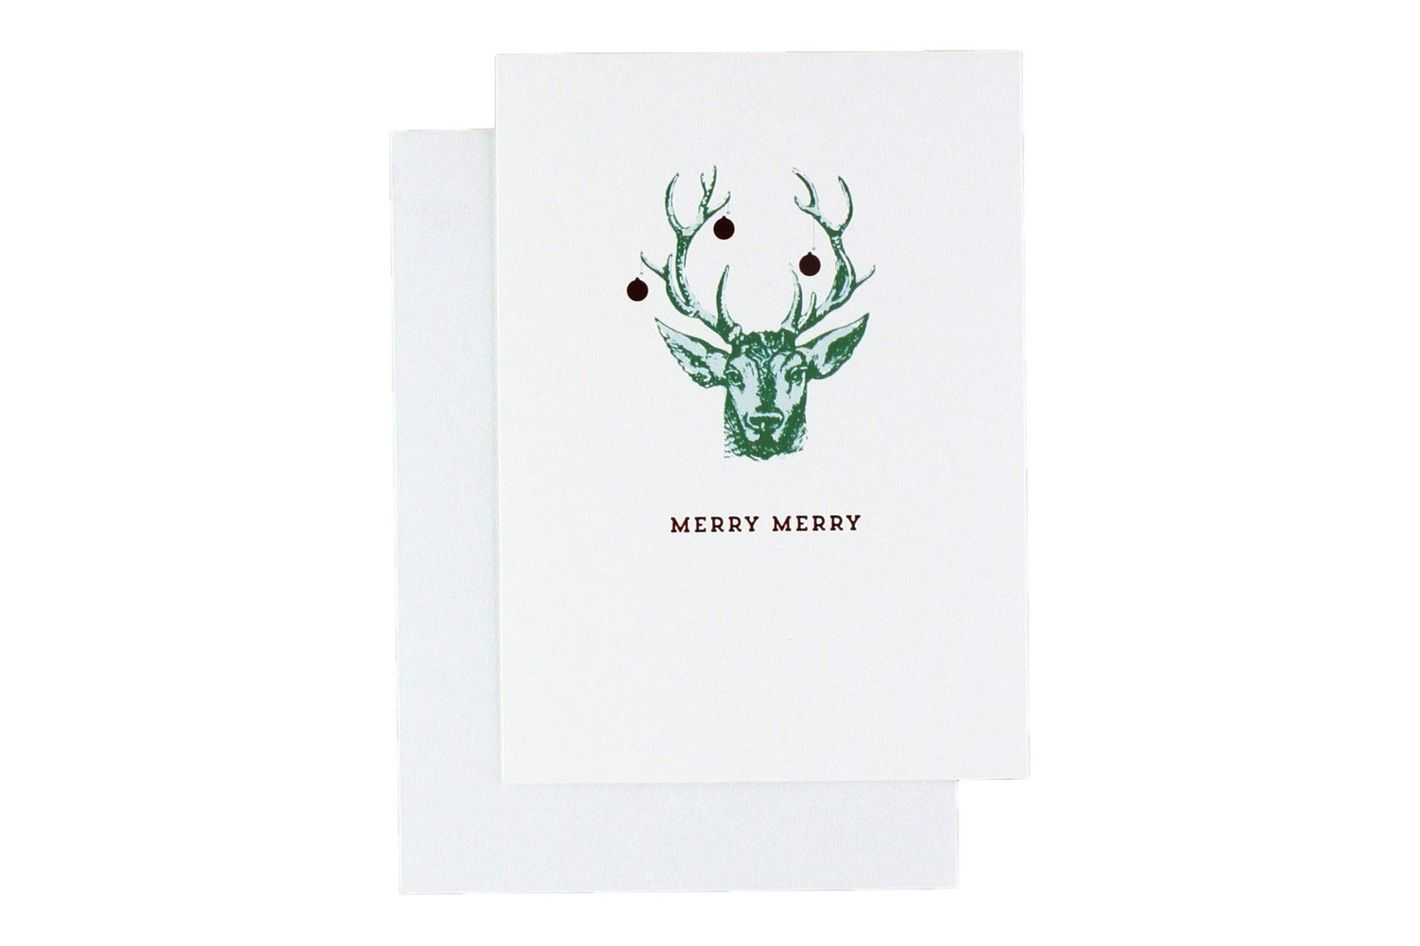 hallmark studio ink christmas boxed cards faux deer head